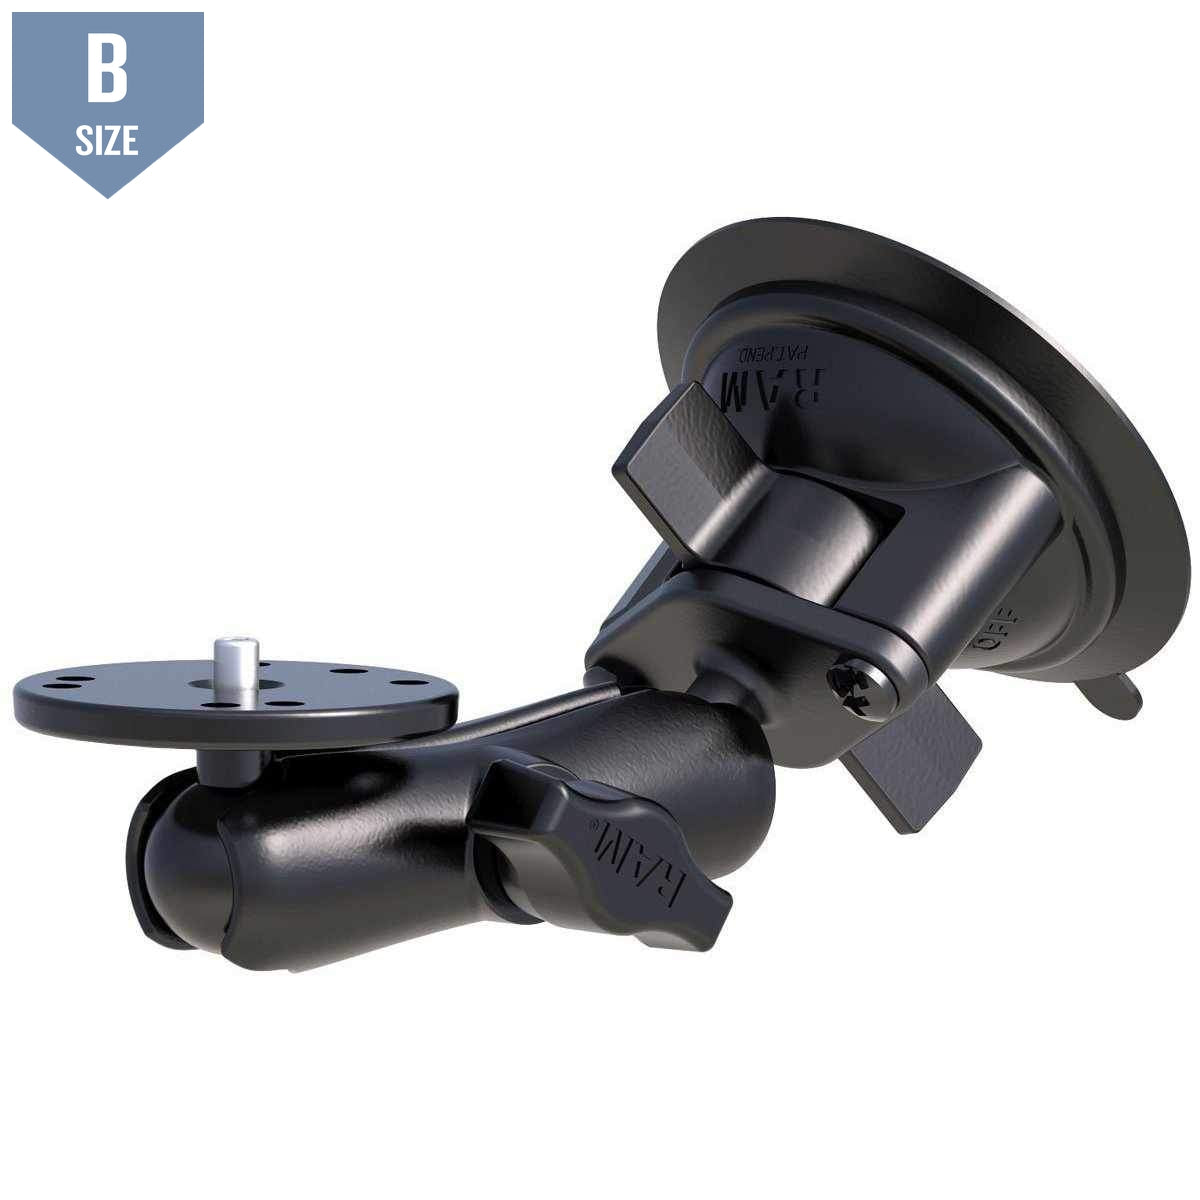 RAM Camera Plate Suction Cup Mount (RAM-B-166-202AU)